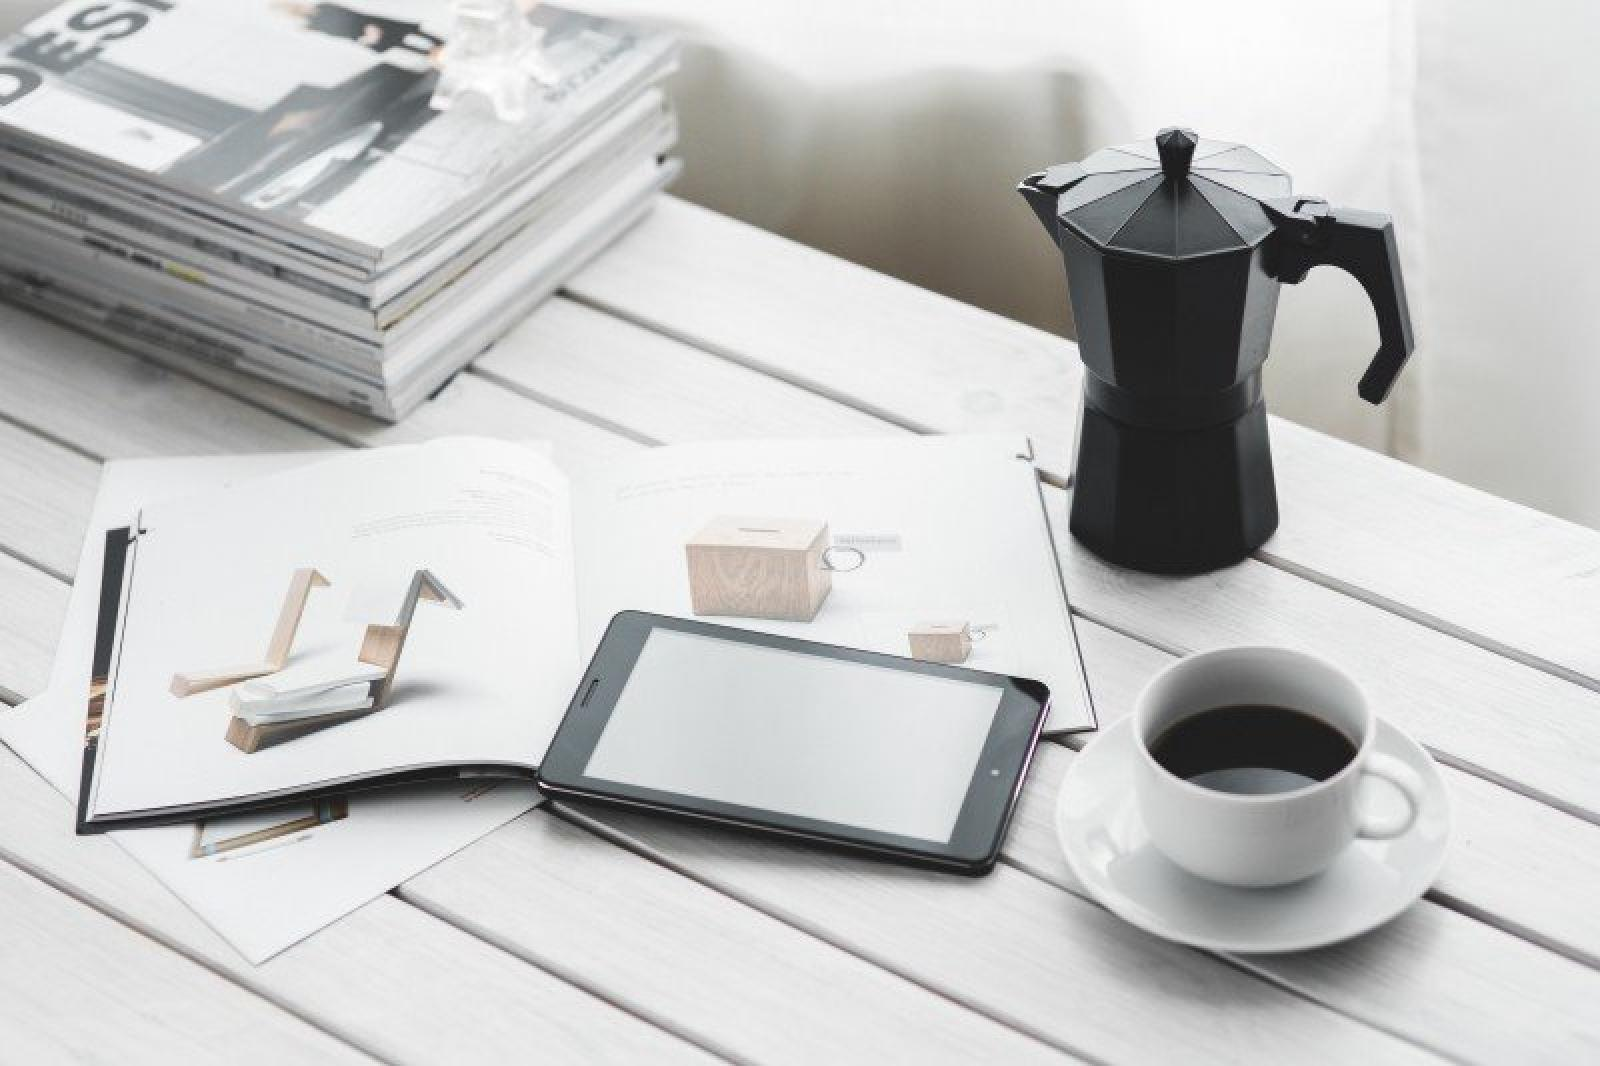 coffee percolator coffee cup digital tablet and magazines on white table